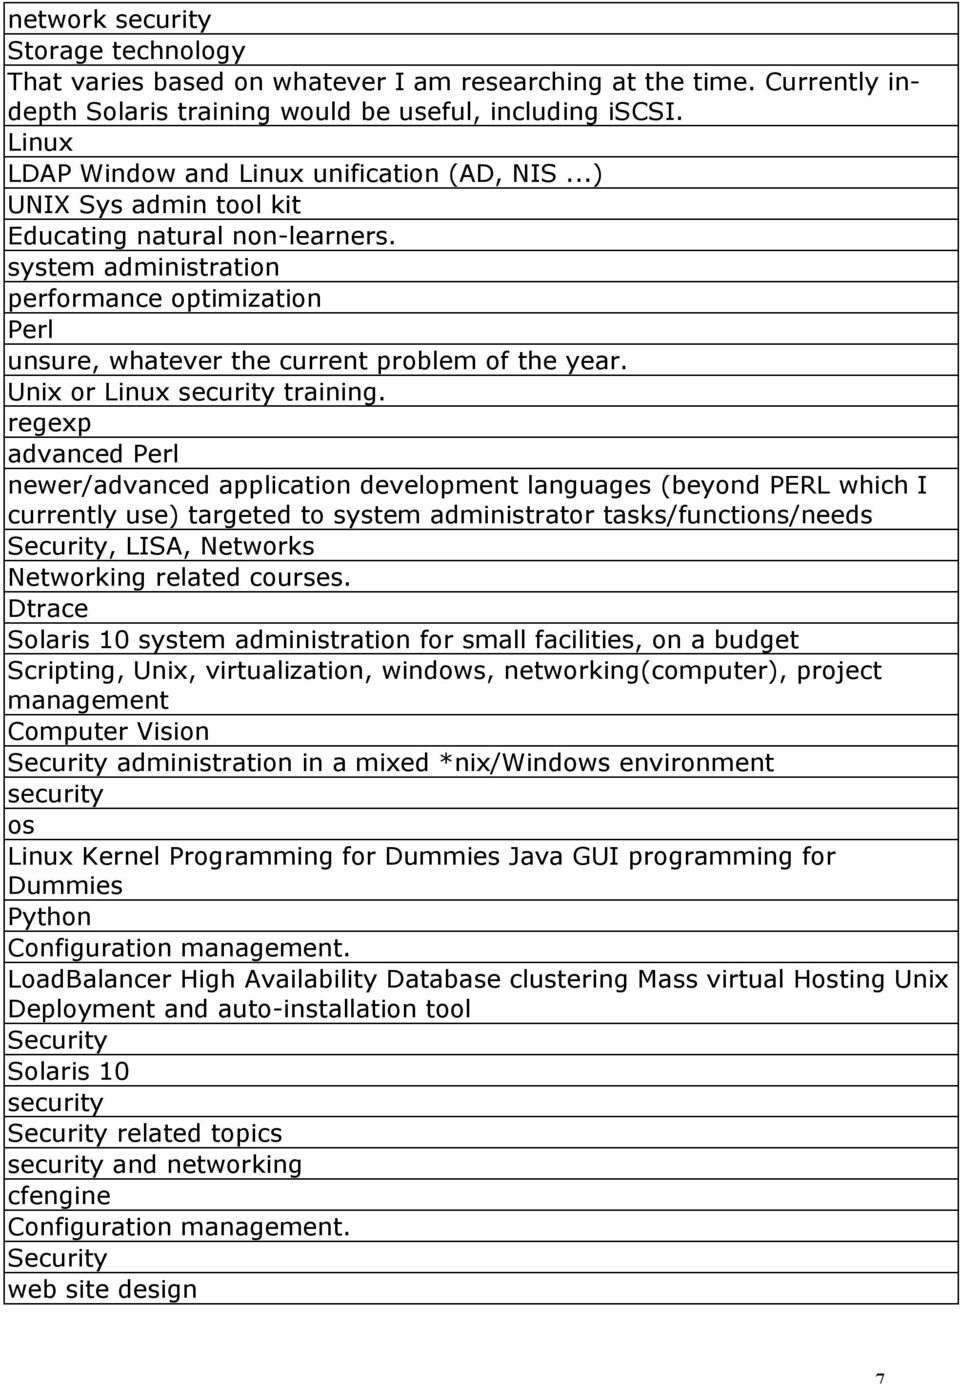 system administration performance optimization Perl unsure, whatever the current problem of the year. Unix or Linux training.